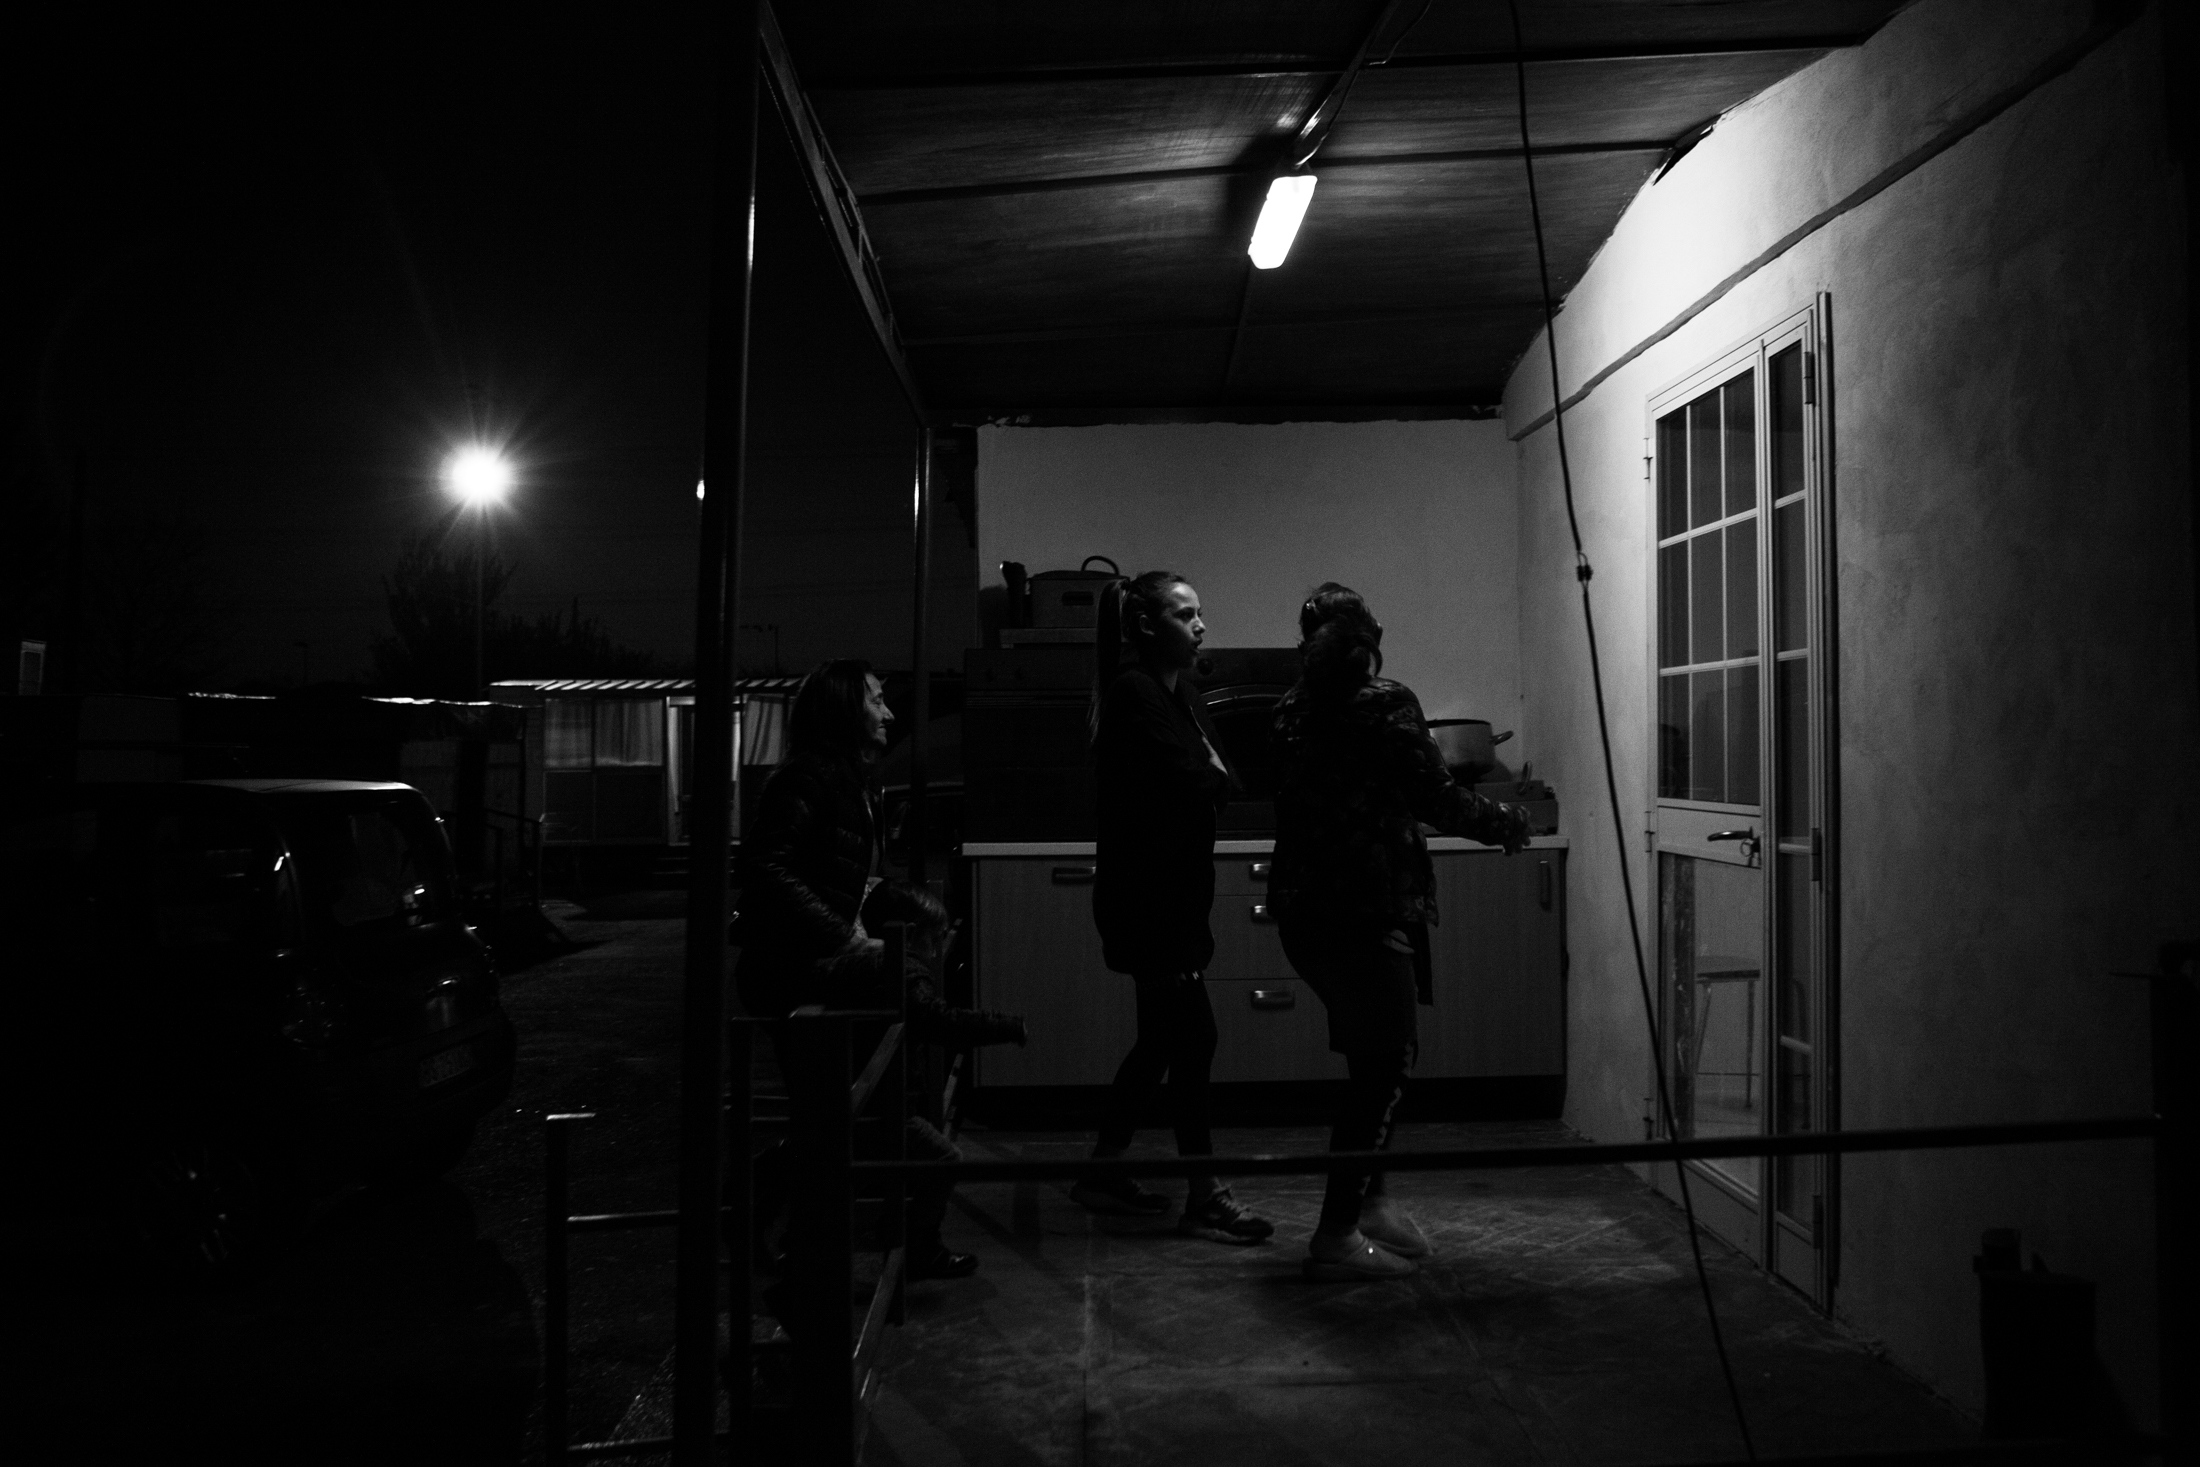 March 2017, nomad camp of Castelnuovo Rangone, Emilia Romagna, Italy. Linda, her daughter and sister are about to enter the mobile home where evangelical worship takes place. Evangelical cults are gaining ground within the Sinti community. The shepherds, also of the Sinti ethnic group, move from field to field to support the various cults and involve an increasing number of faithful.